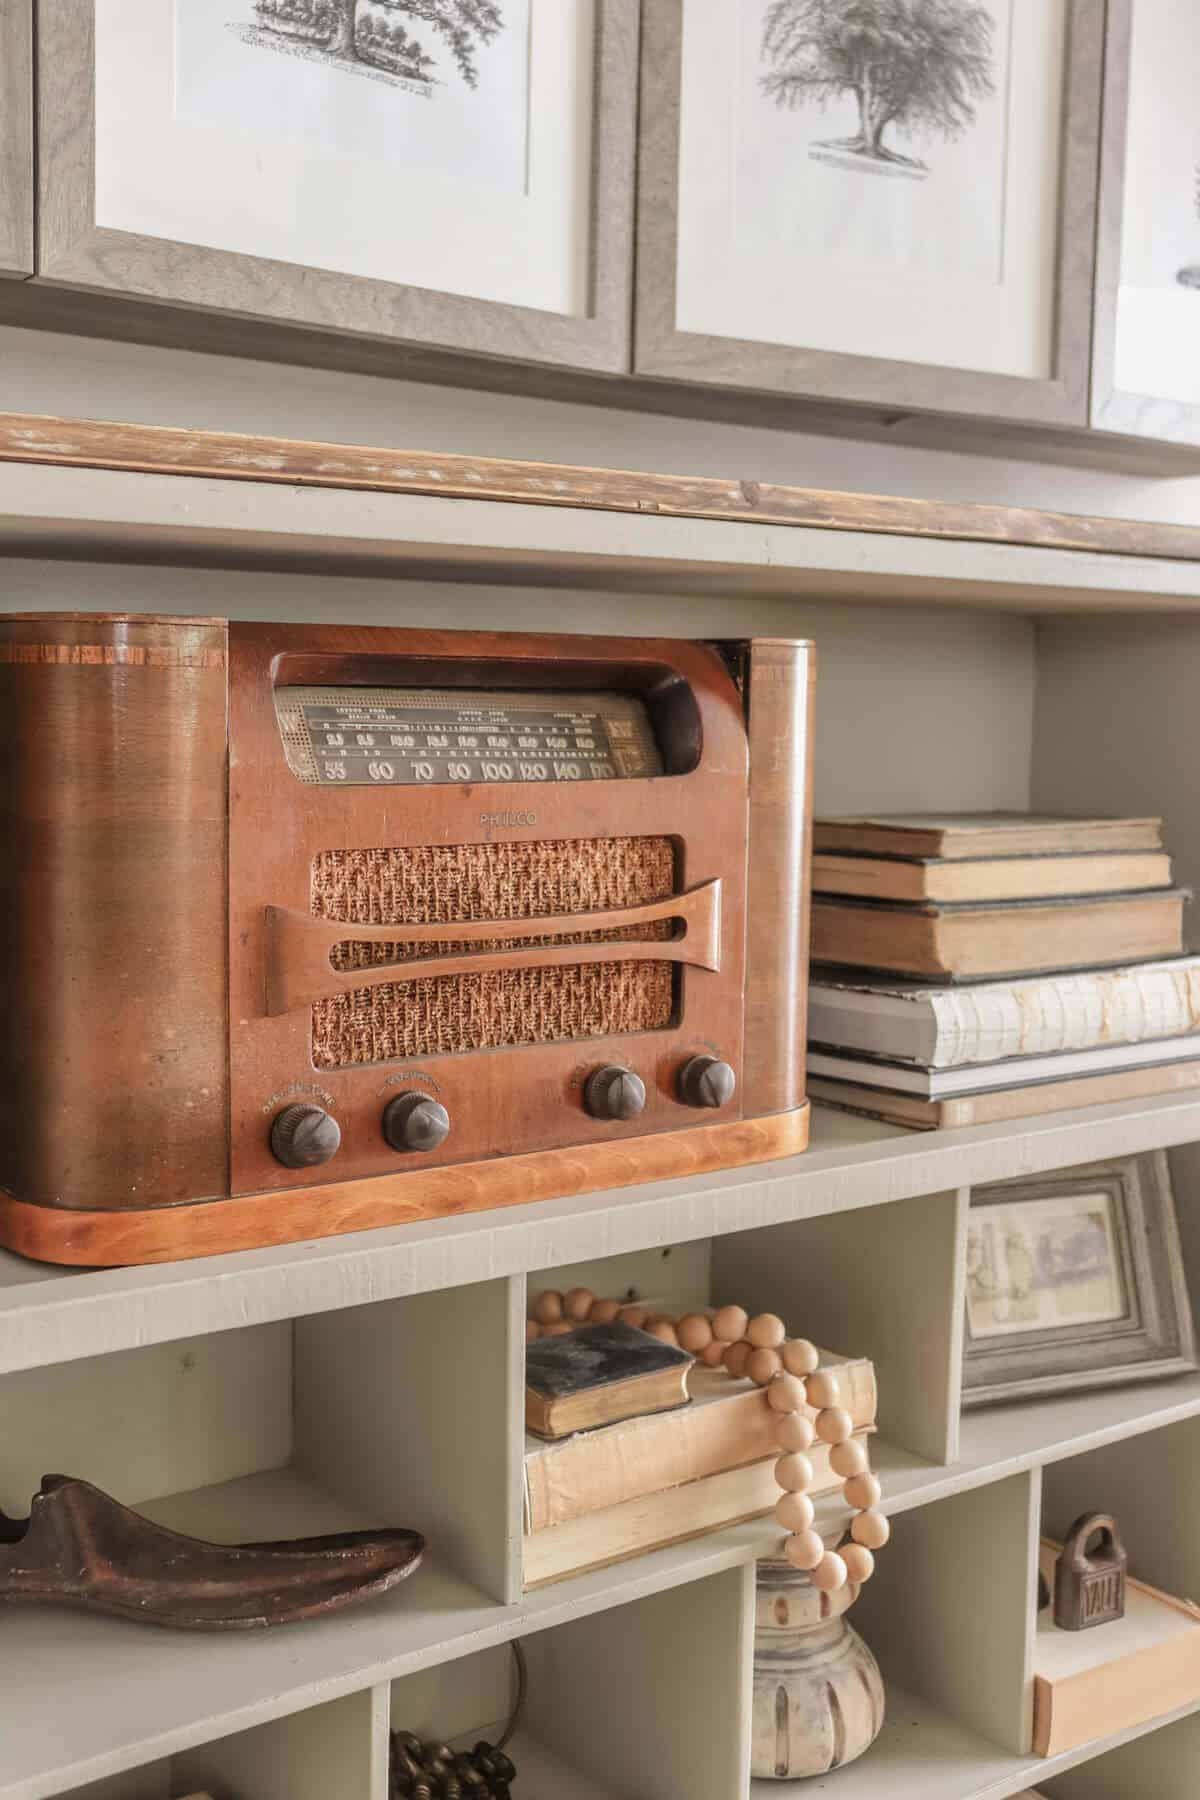 Vintage radio on a shelf with old books